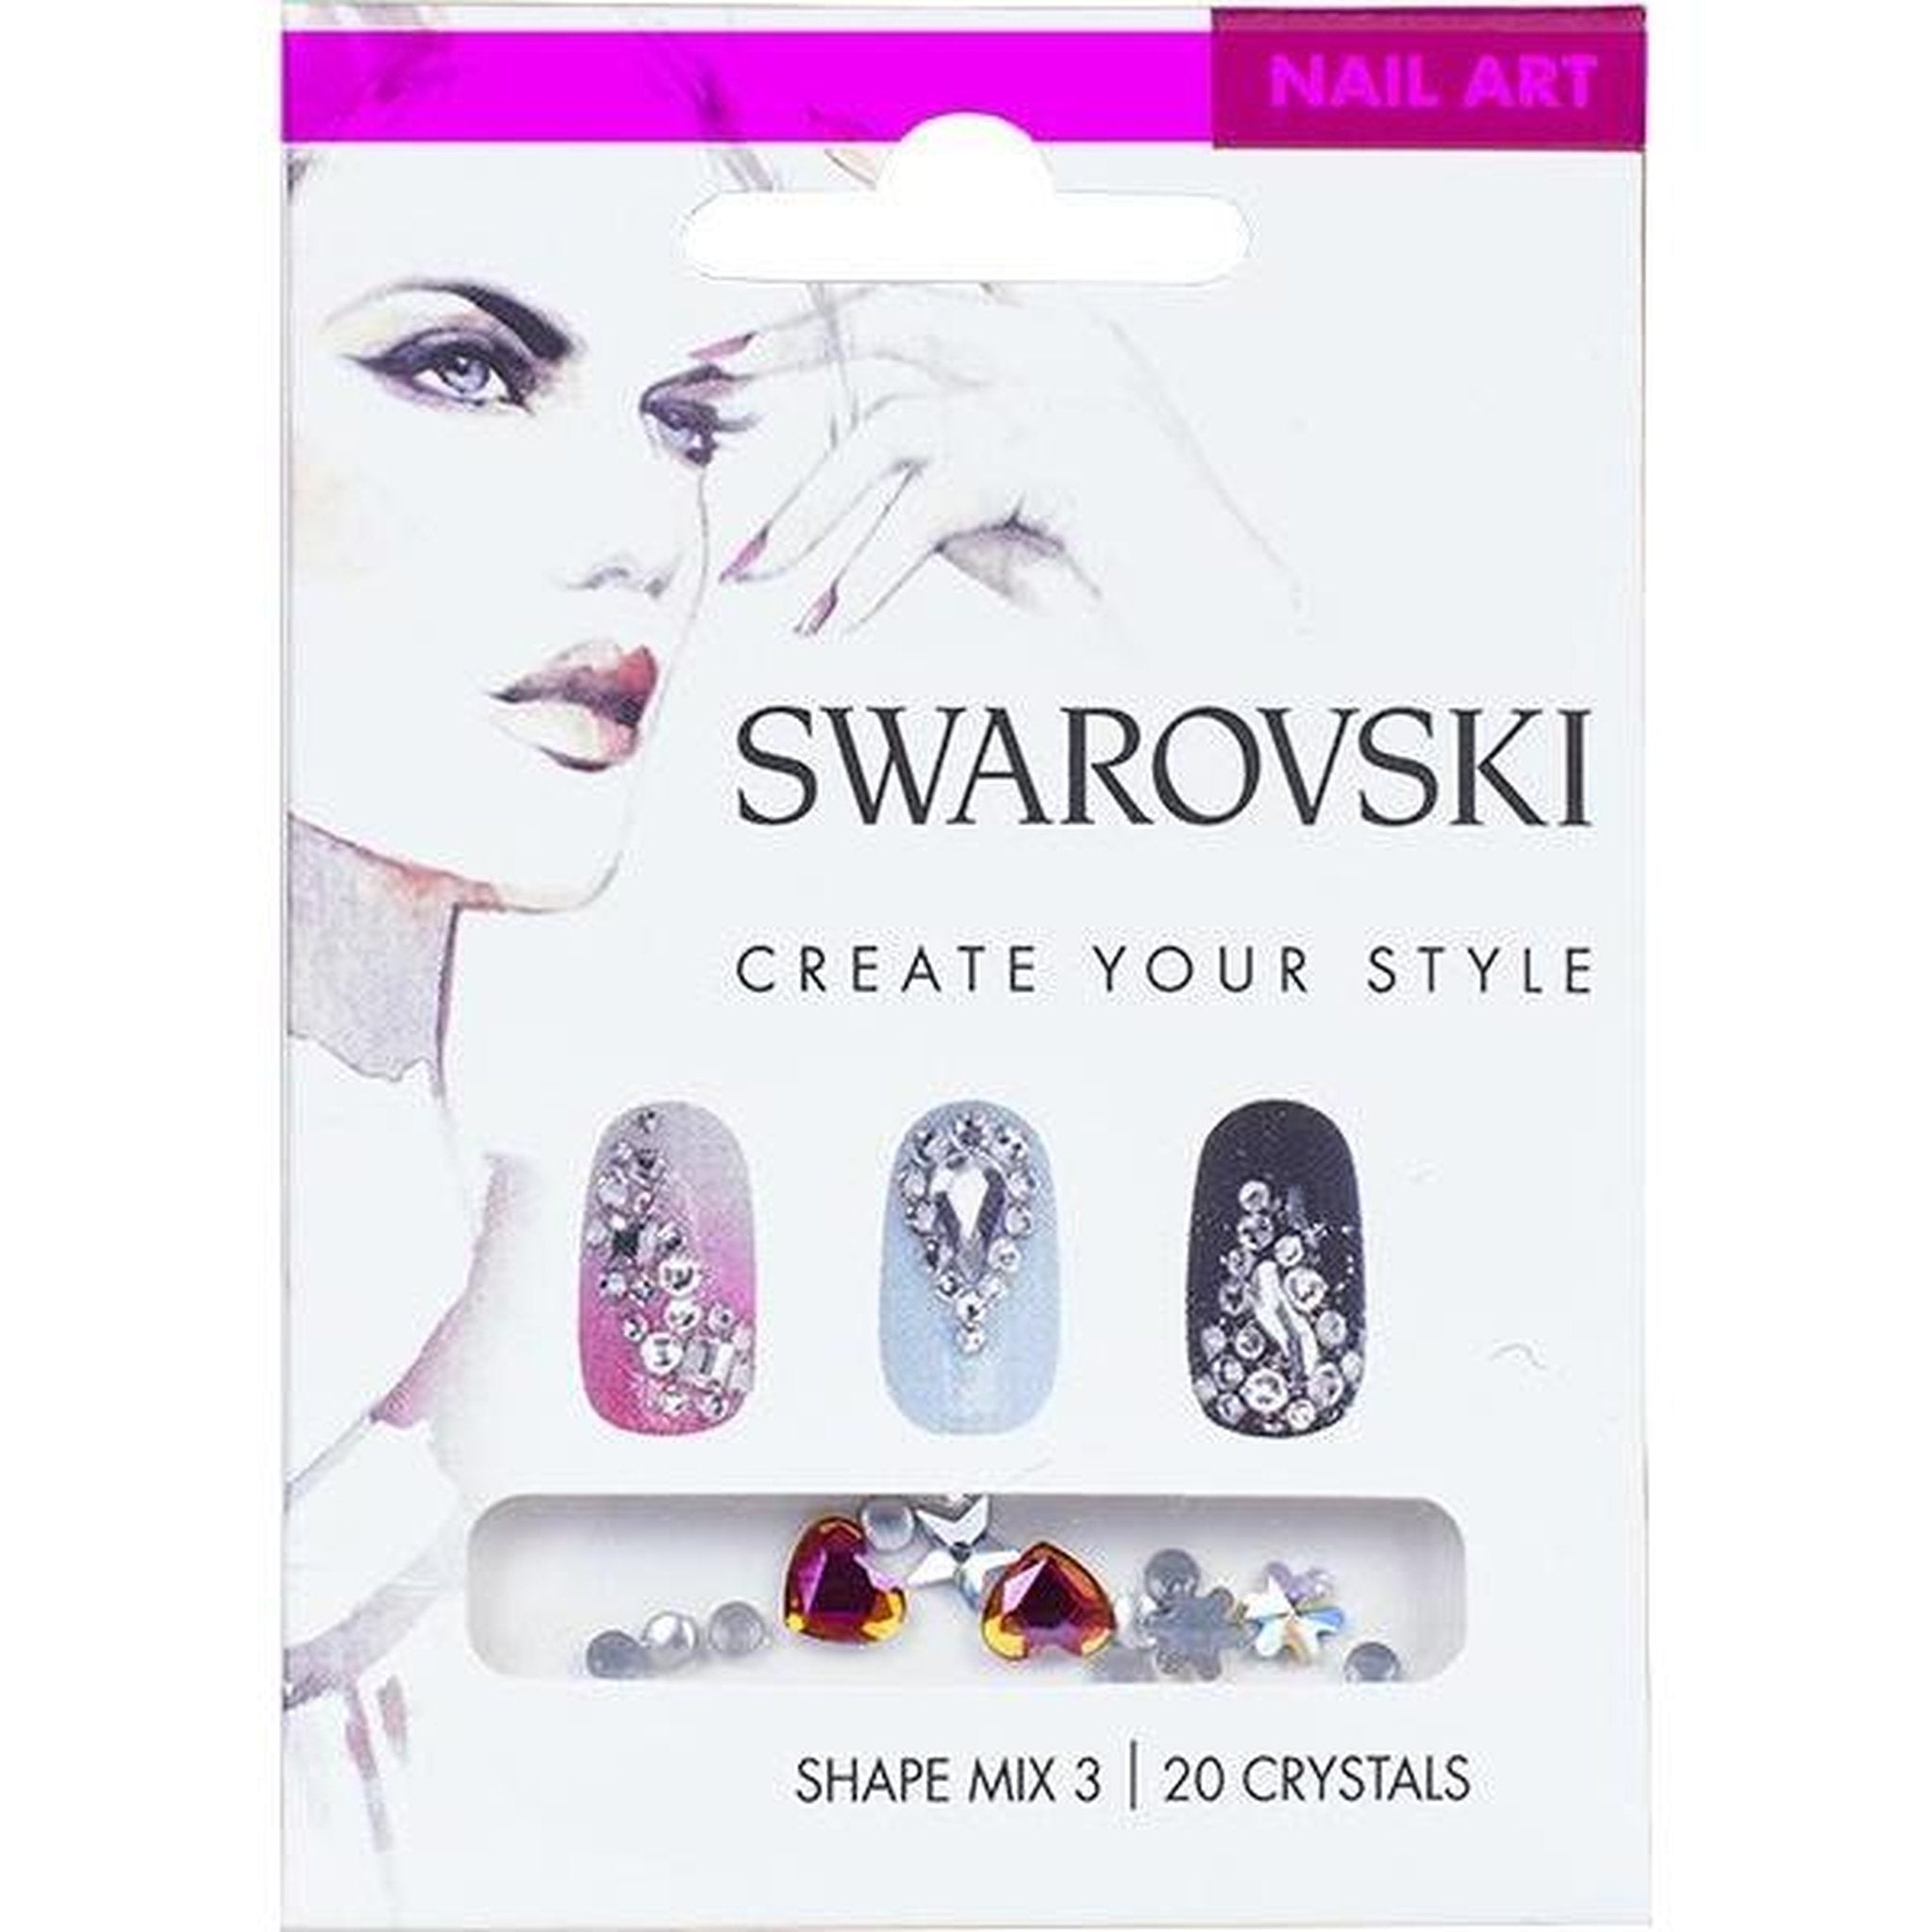 SWAROVSKI NAIL ART LOOSE CRYSTALS - SHAPE MIX 3-Gel Essentialz